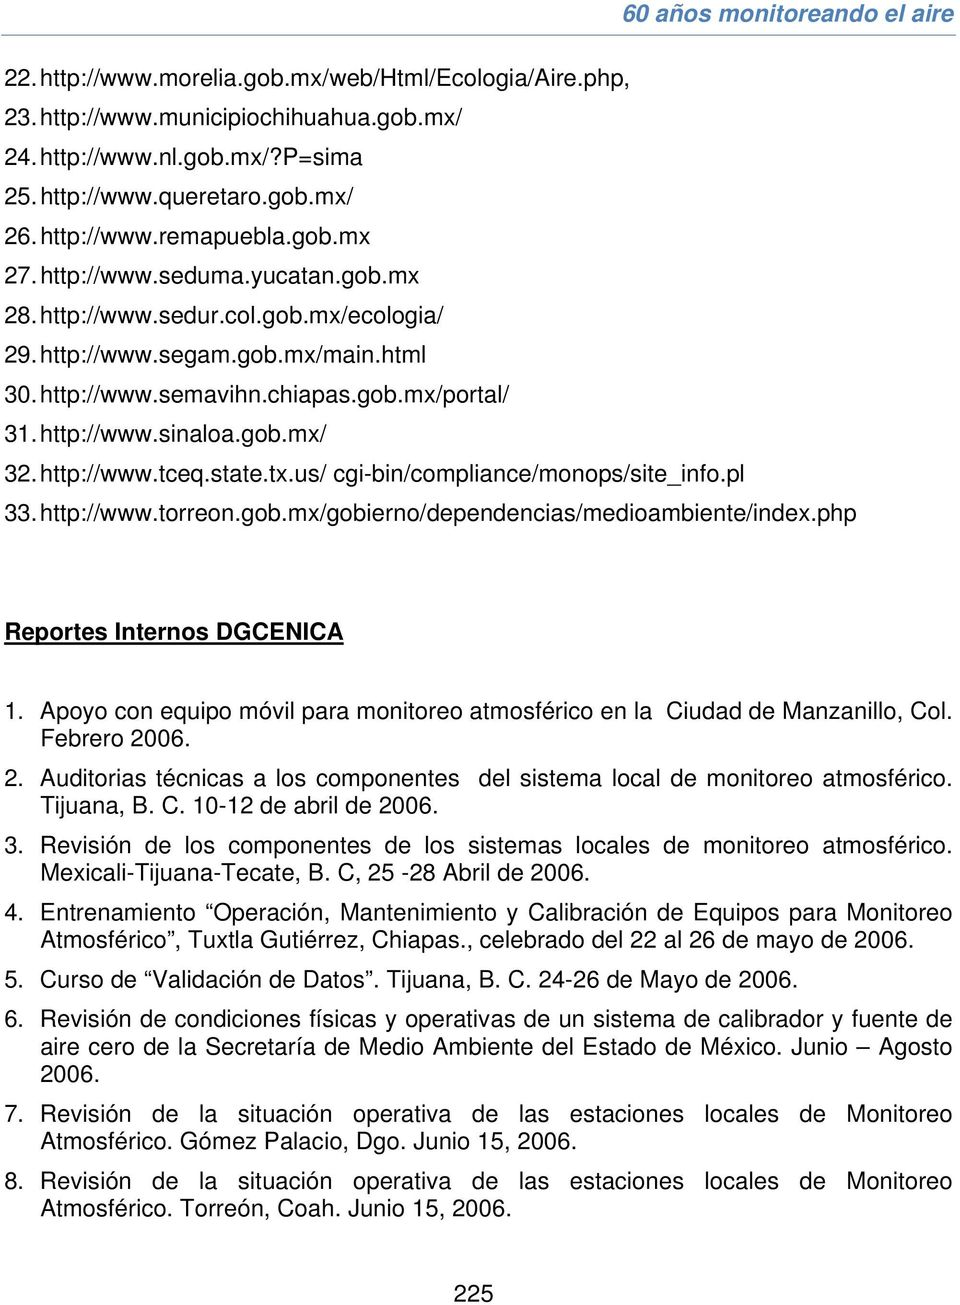 http://www.tceq.state.tx.us/ cgi-bin/compliance/monops/site_info.pl 33. http://www.torreon.gob.mx/gobierno/dependencias/medioambiente/index.php Reportes Internos DGCENICA 1.